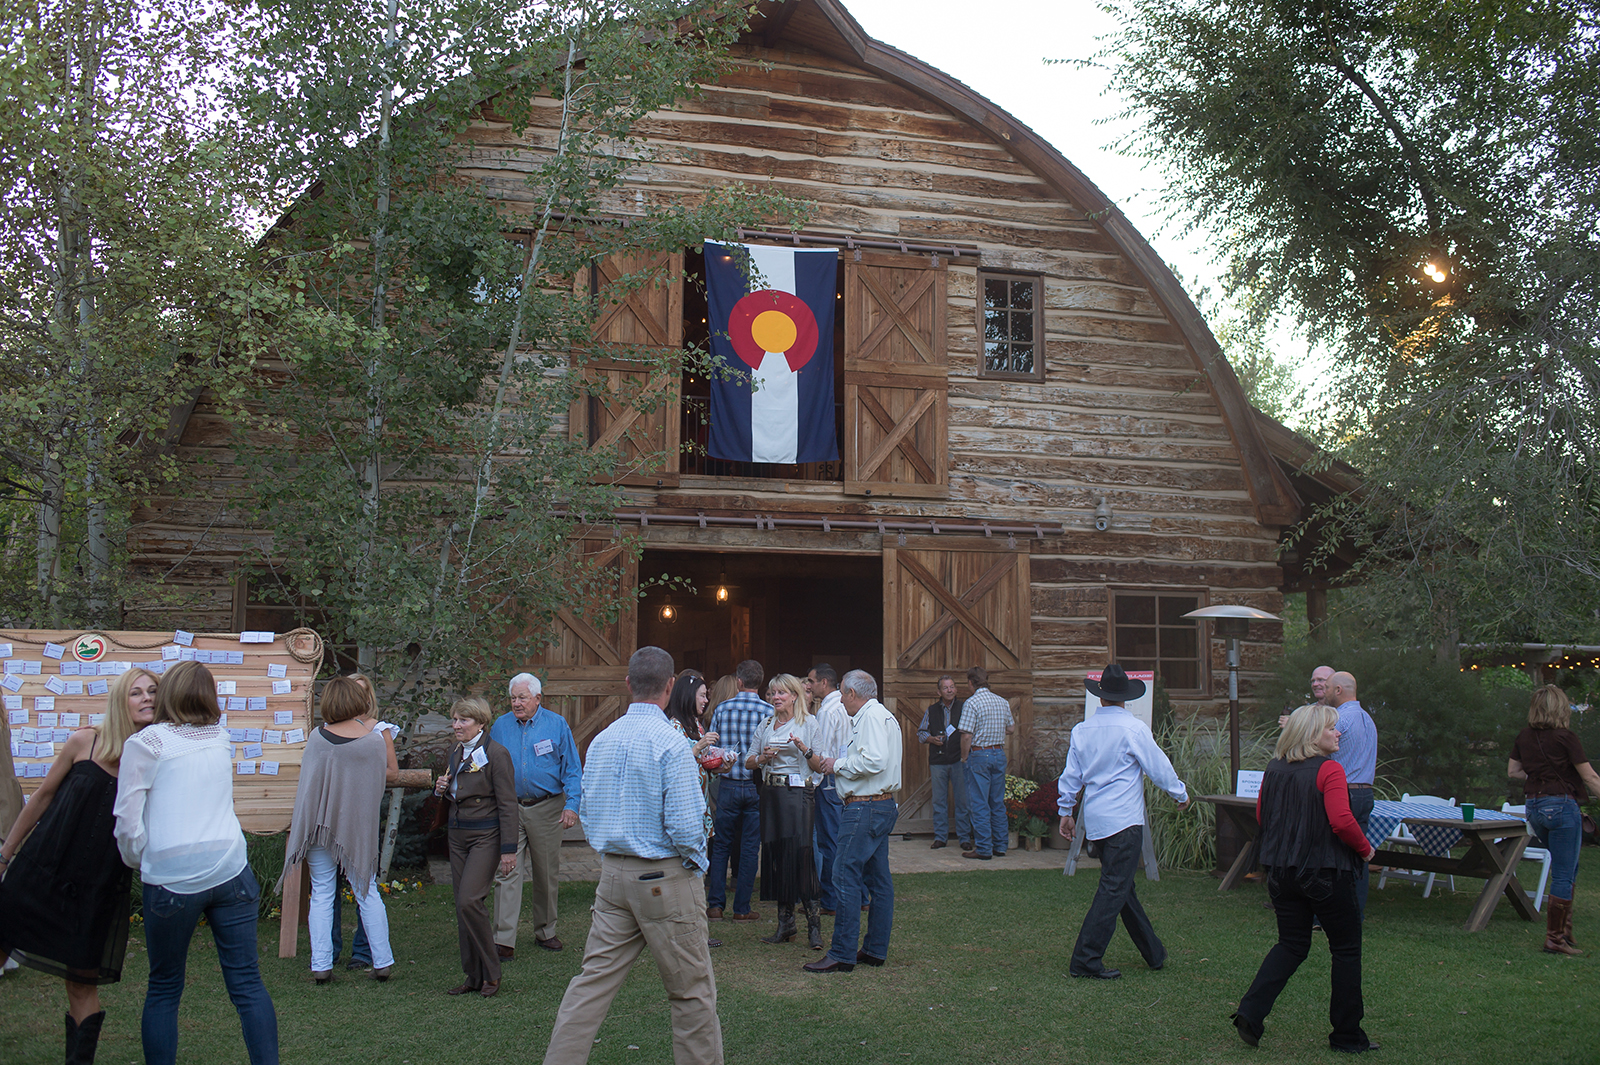 Rady Barn located at 1305 E. Quincy Ave., home to Barn Party.